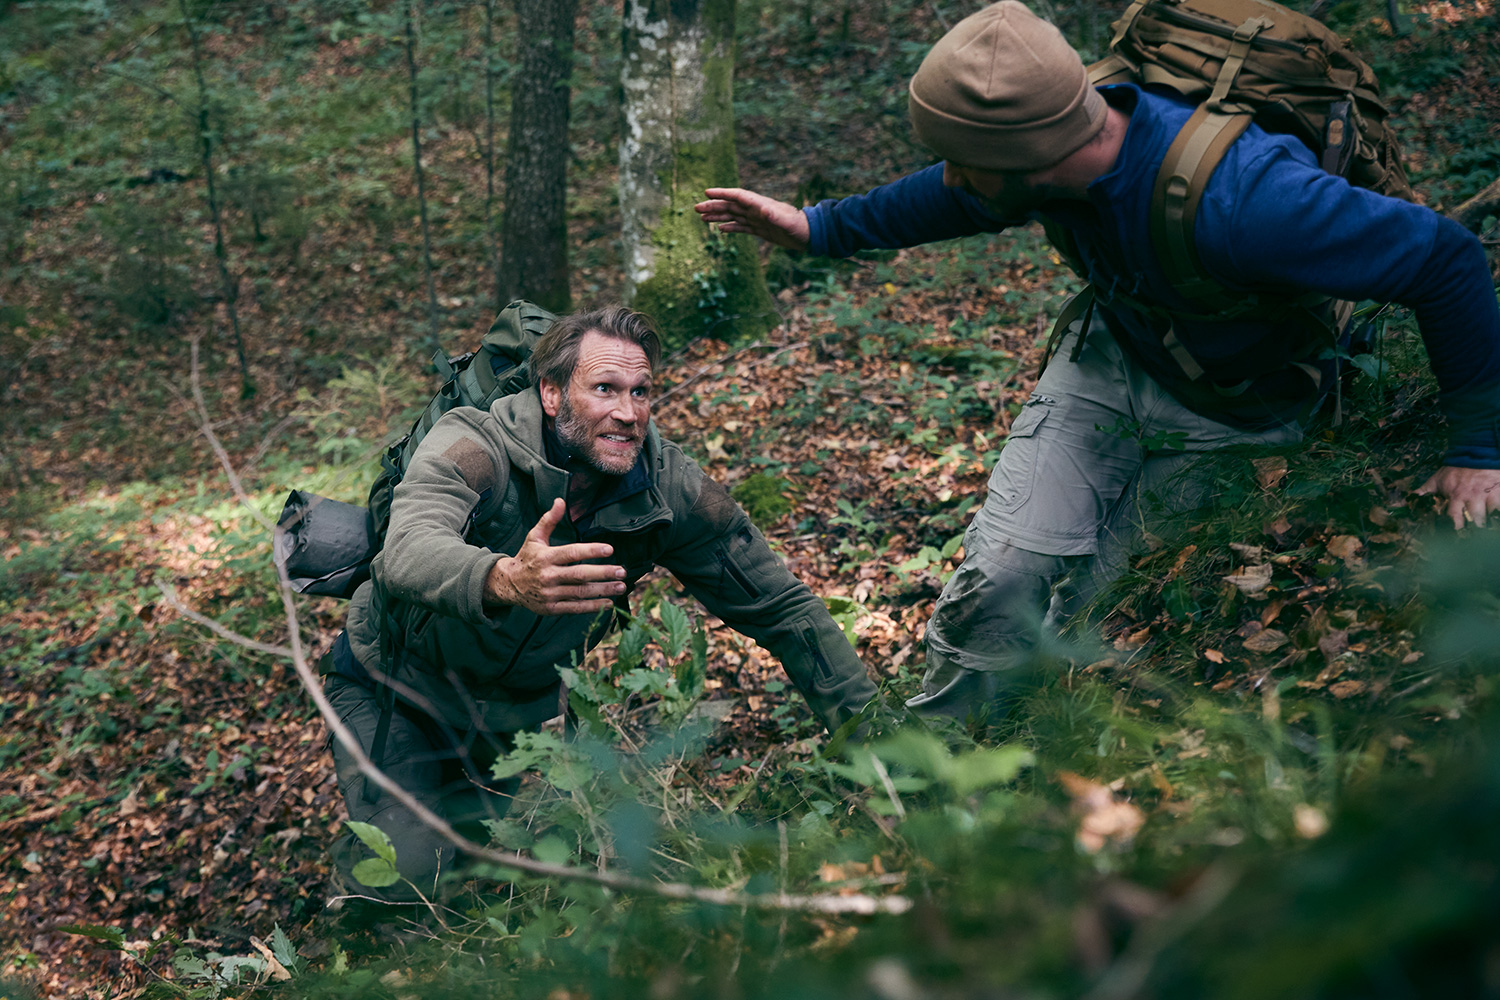 Survival trainer giving a man a hand while climbing up an embankment in the forest